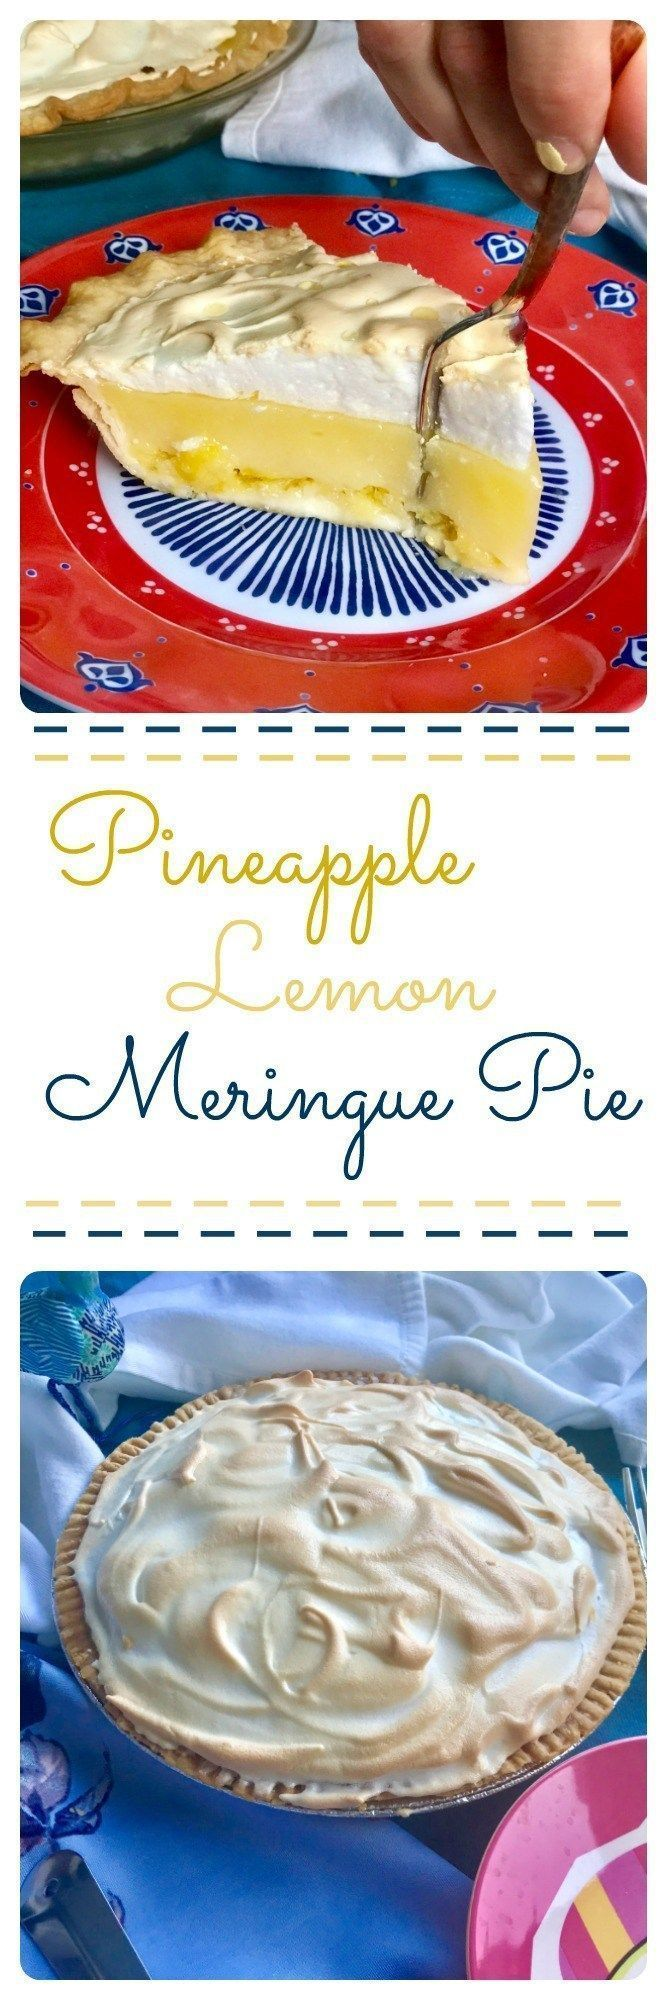 Aunt Barbara's Pineapple Lemon Meringue Pie - From Charm to Table #lemonmeringuepie Aunt Barbara's Pineapple Lemon Meringue Pie - From Charm to Table #lemonmeringuepie Aunt Barbara's Pineapple Lemon Meringue Pie - From Charm to Table #lemonmeringuepie Aunt Barbara's Pineapple Lemon Meringue Pie - From Charm to Table #lemonmeringuepie Aunt Barbara's Pineapple Lemon Meringue Pie - From Charm to Table #lemonmeringuepie Aunt Barbara's Pineapple Lemon Meringue Pie - From Charm to Table #l #lemonmeringuepie